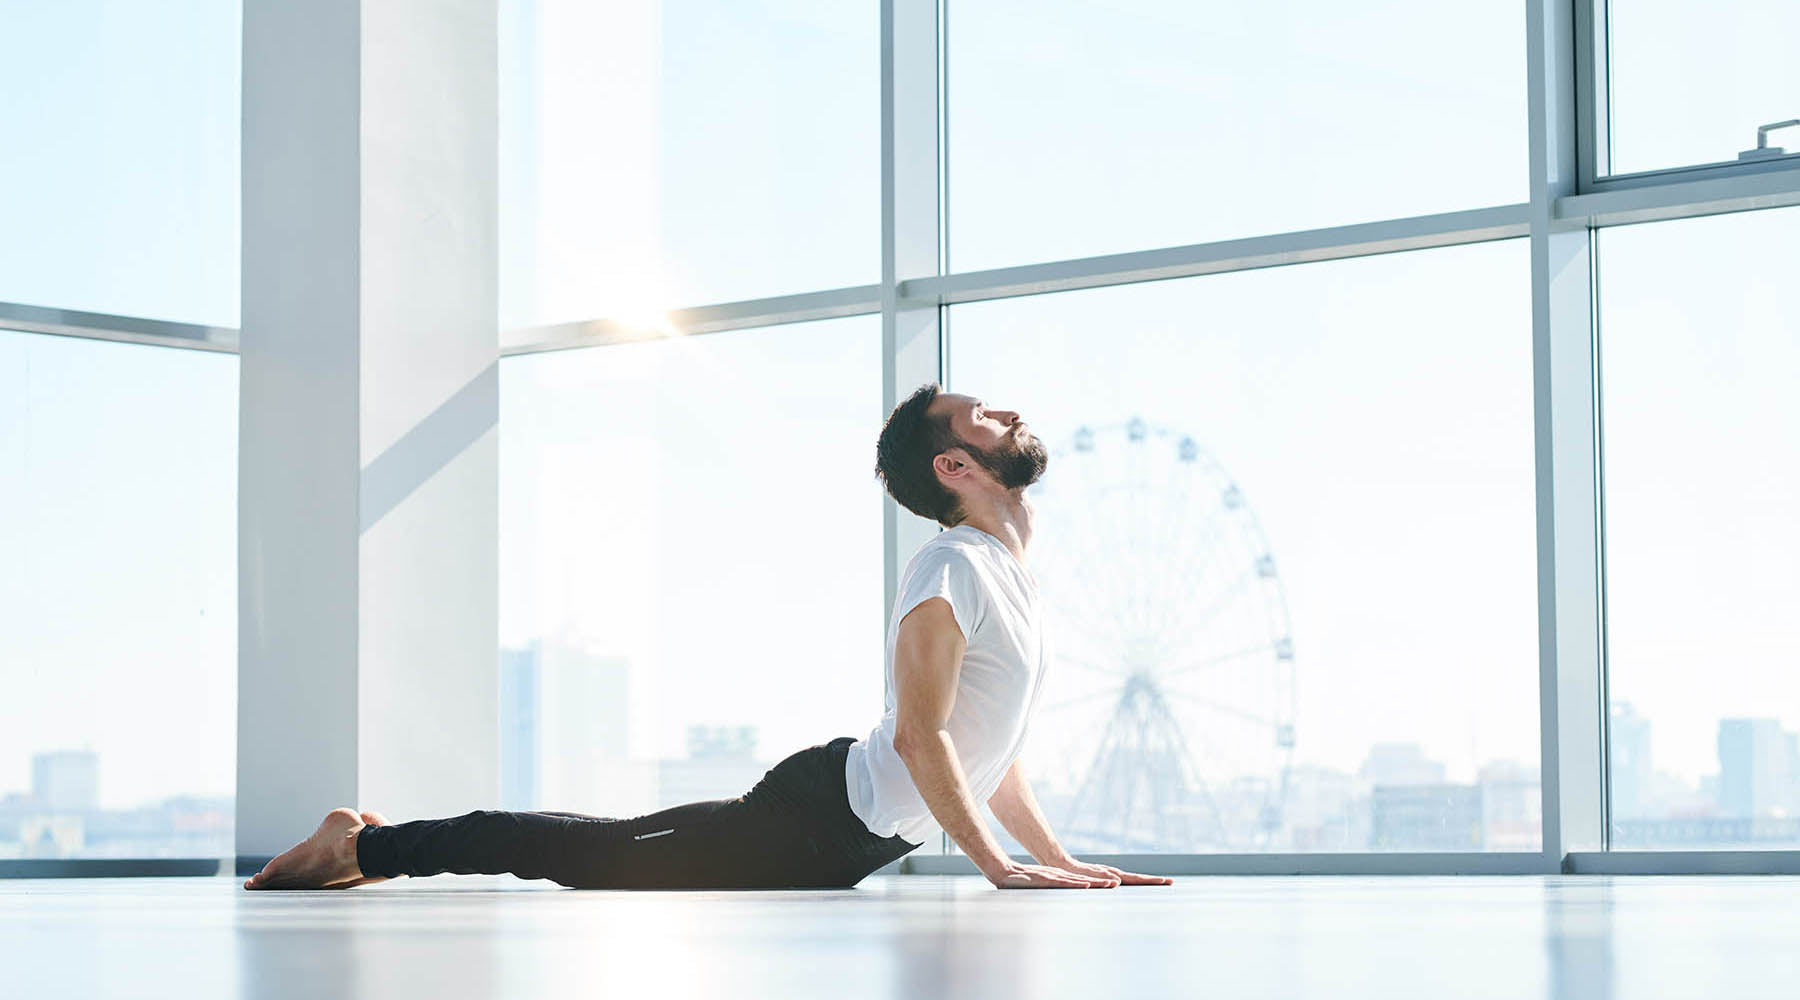 Man in white shirt and black pants performing Kegel exercises in a room with big windows